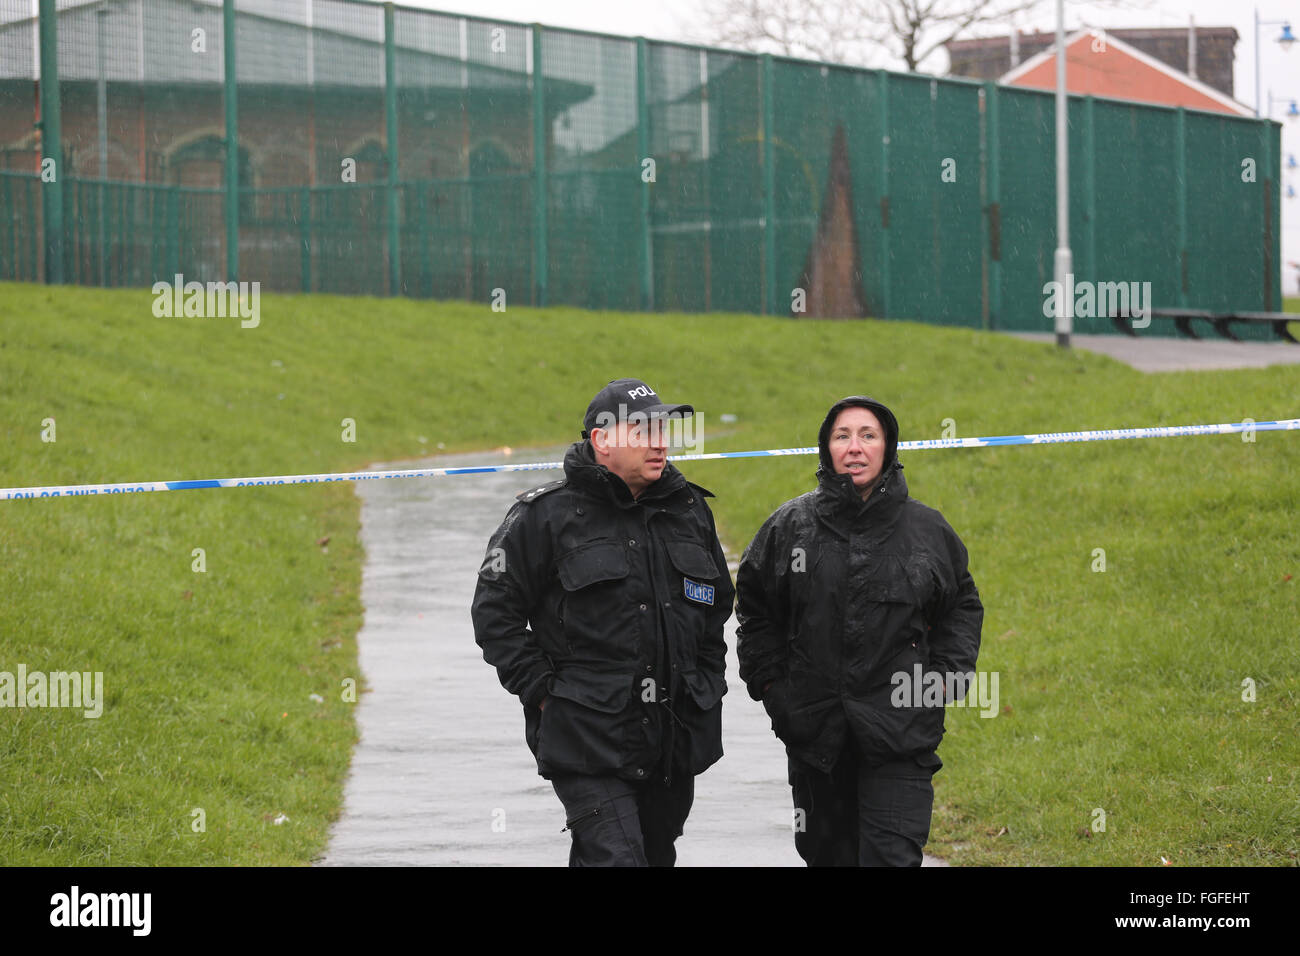 Rochdale, UK. 19th Feb, 2016. Tactical Aid Unit Officers in Rochdale, UK 19th February 2016 Credit:  Barbara Cook/Alamy - Stock Image